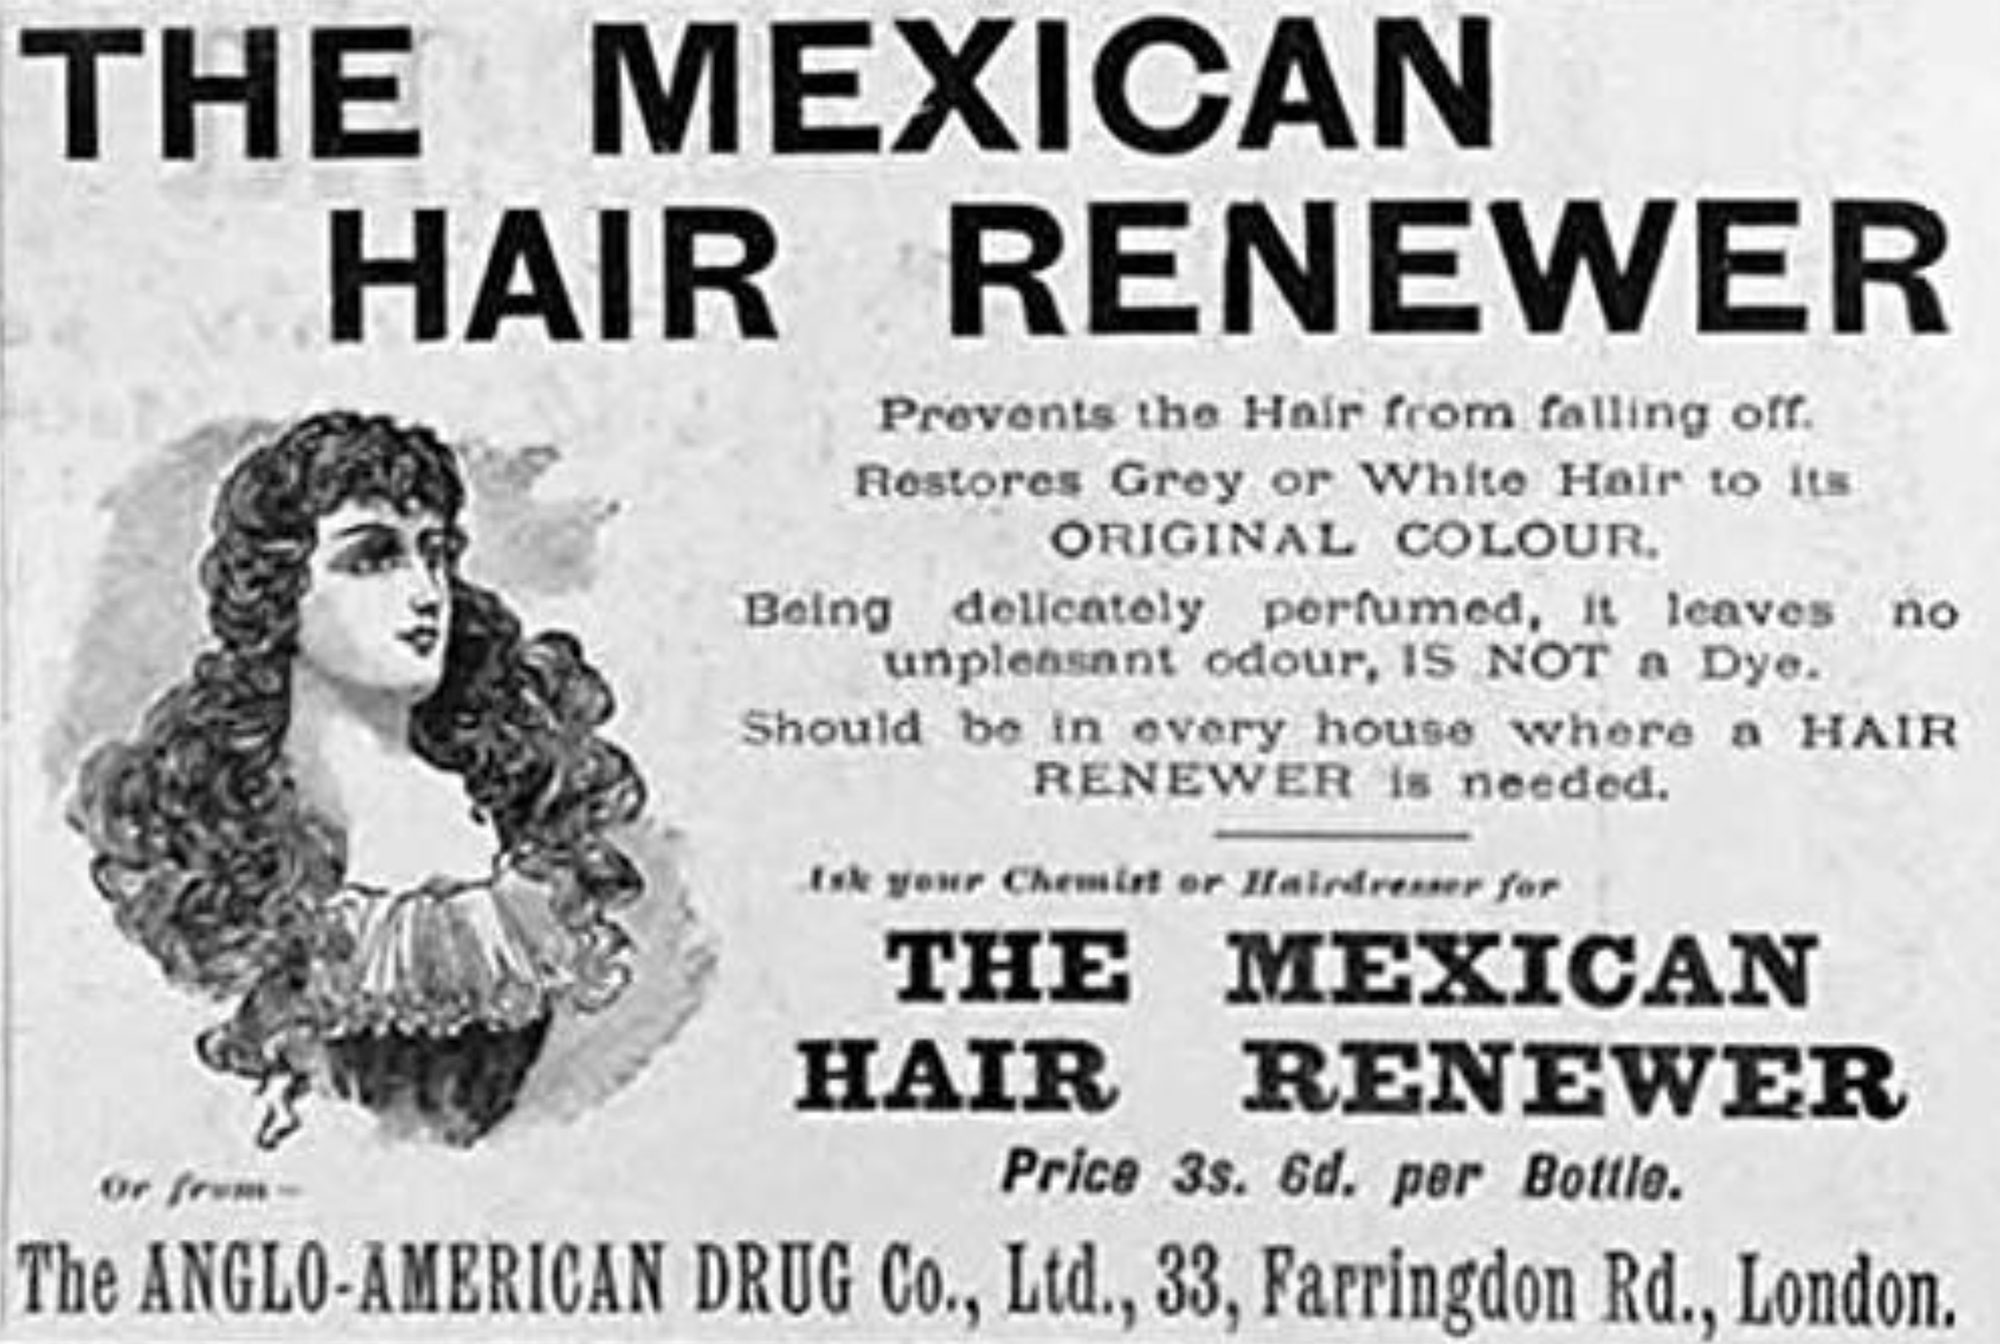 Mexican Hair Renewer Advertisement. Source: The Illustrated London News 18 January 1913